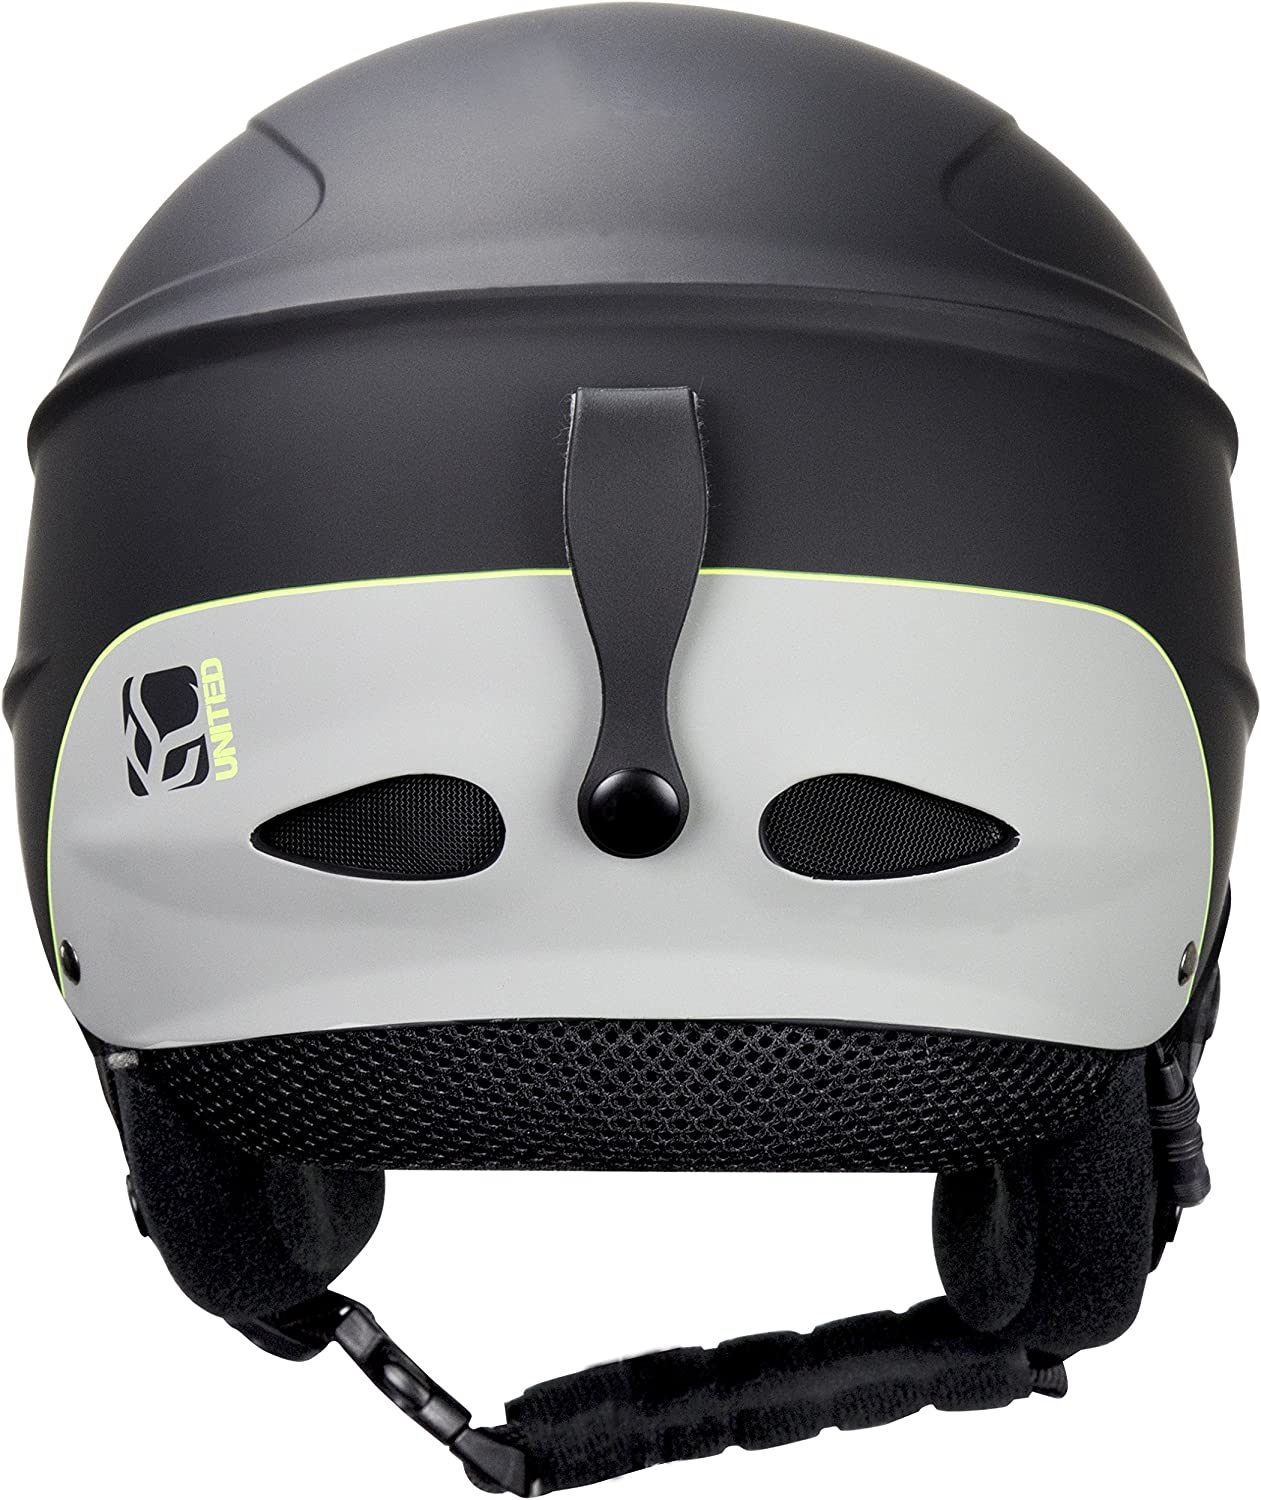 Demon Phantom Helmet with Brainteaser Audio and Free Balaclava Black, Medium